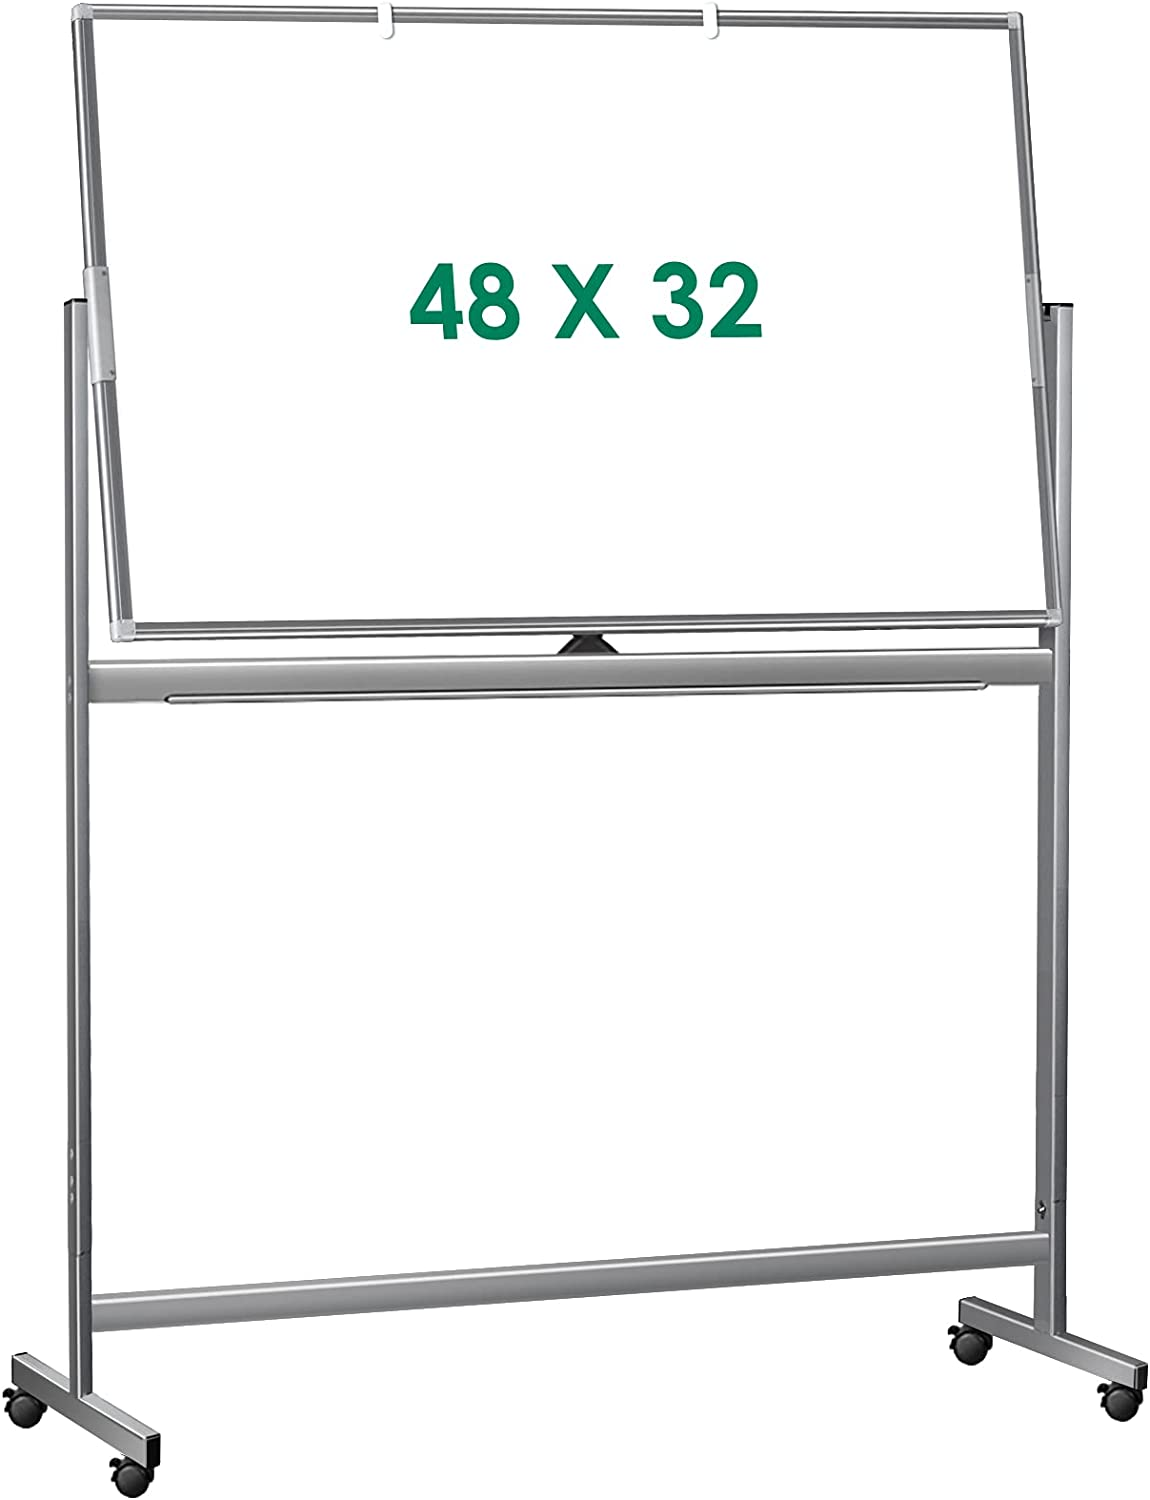 Double Sided Mobile Whiteboard, 48 x 32 inches Large Rolling White Board, maxtek Reversible Magnetic Dry Erase Board Easel Standing Whiteboard on Wheels for Home Office Classroom, Gray